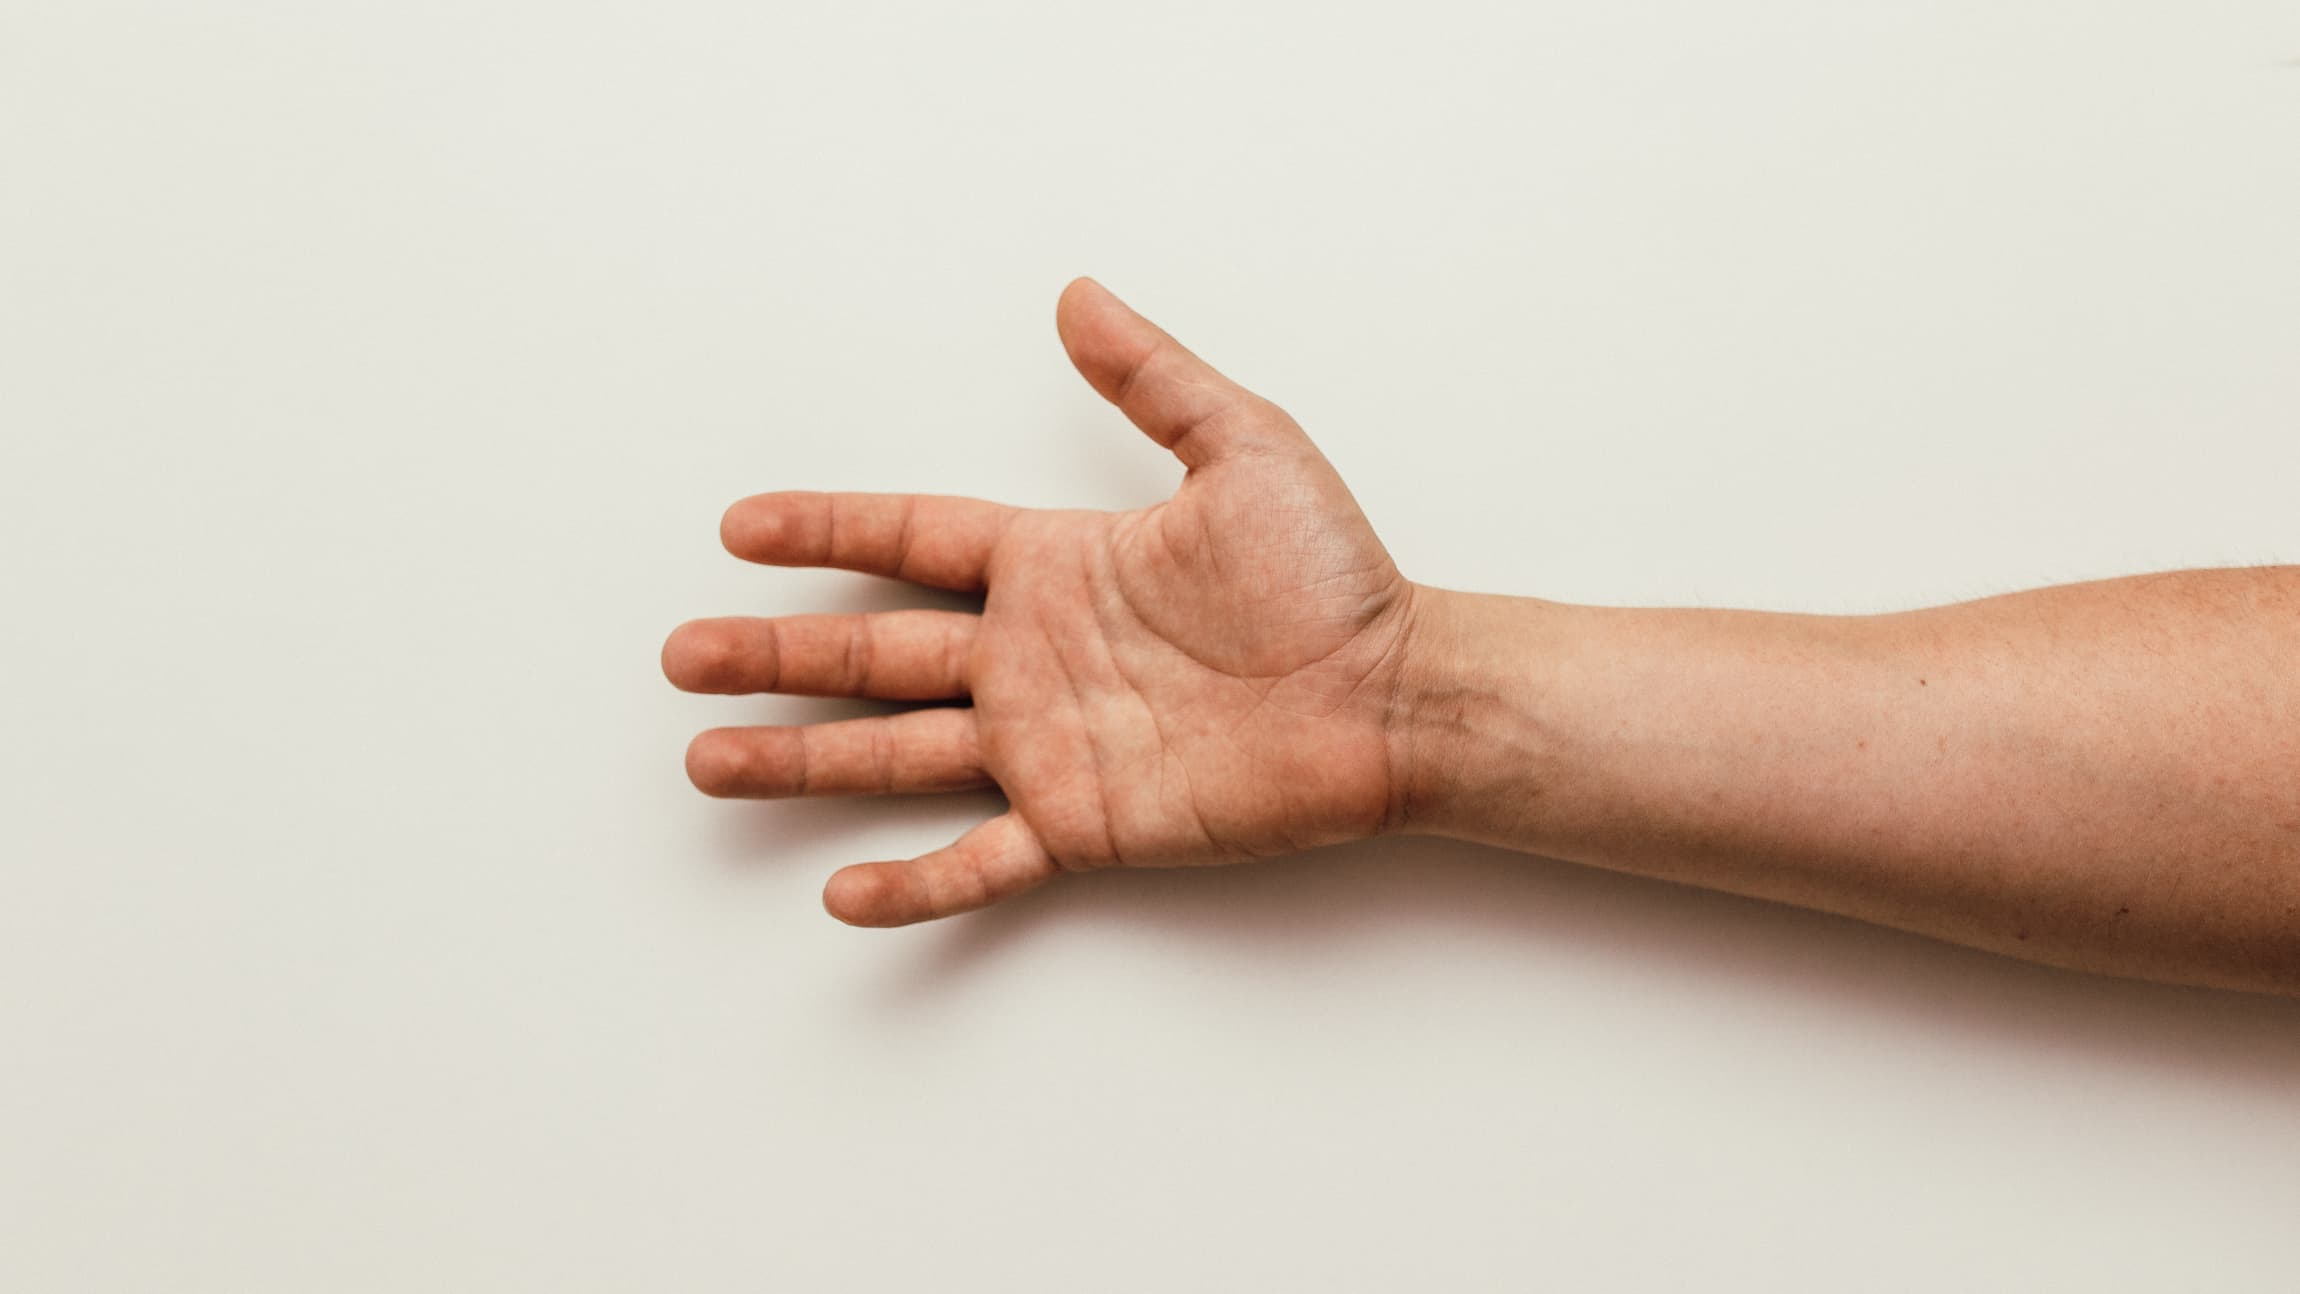 An open hand reaches into frame from the right side.